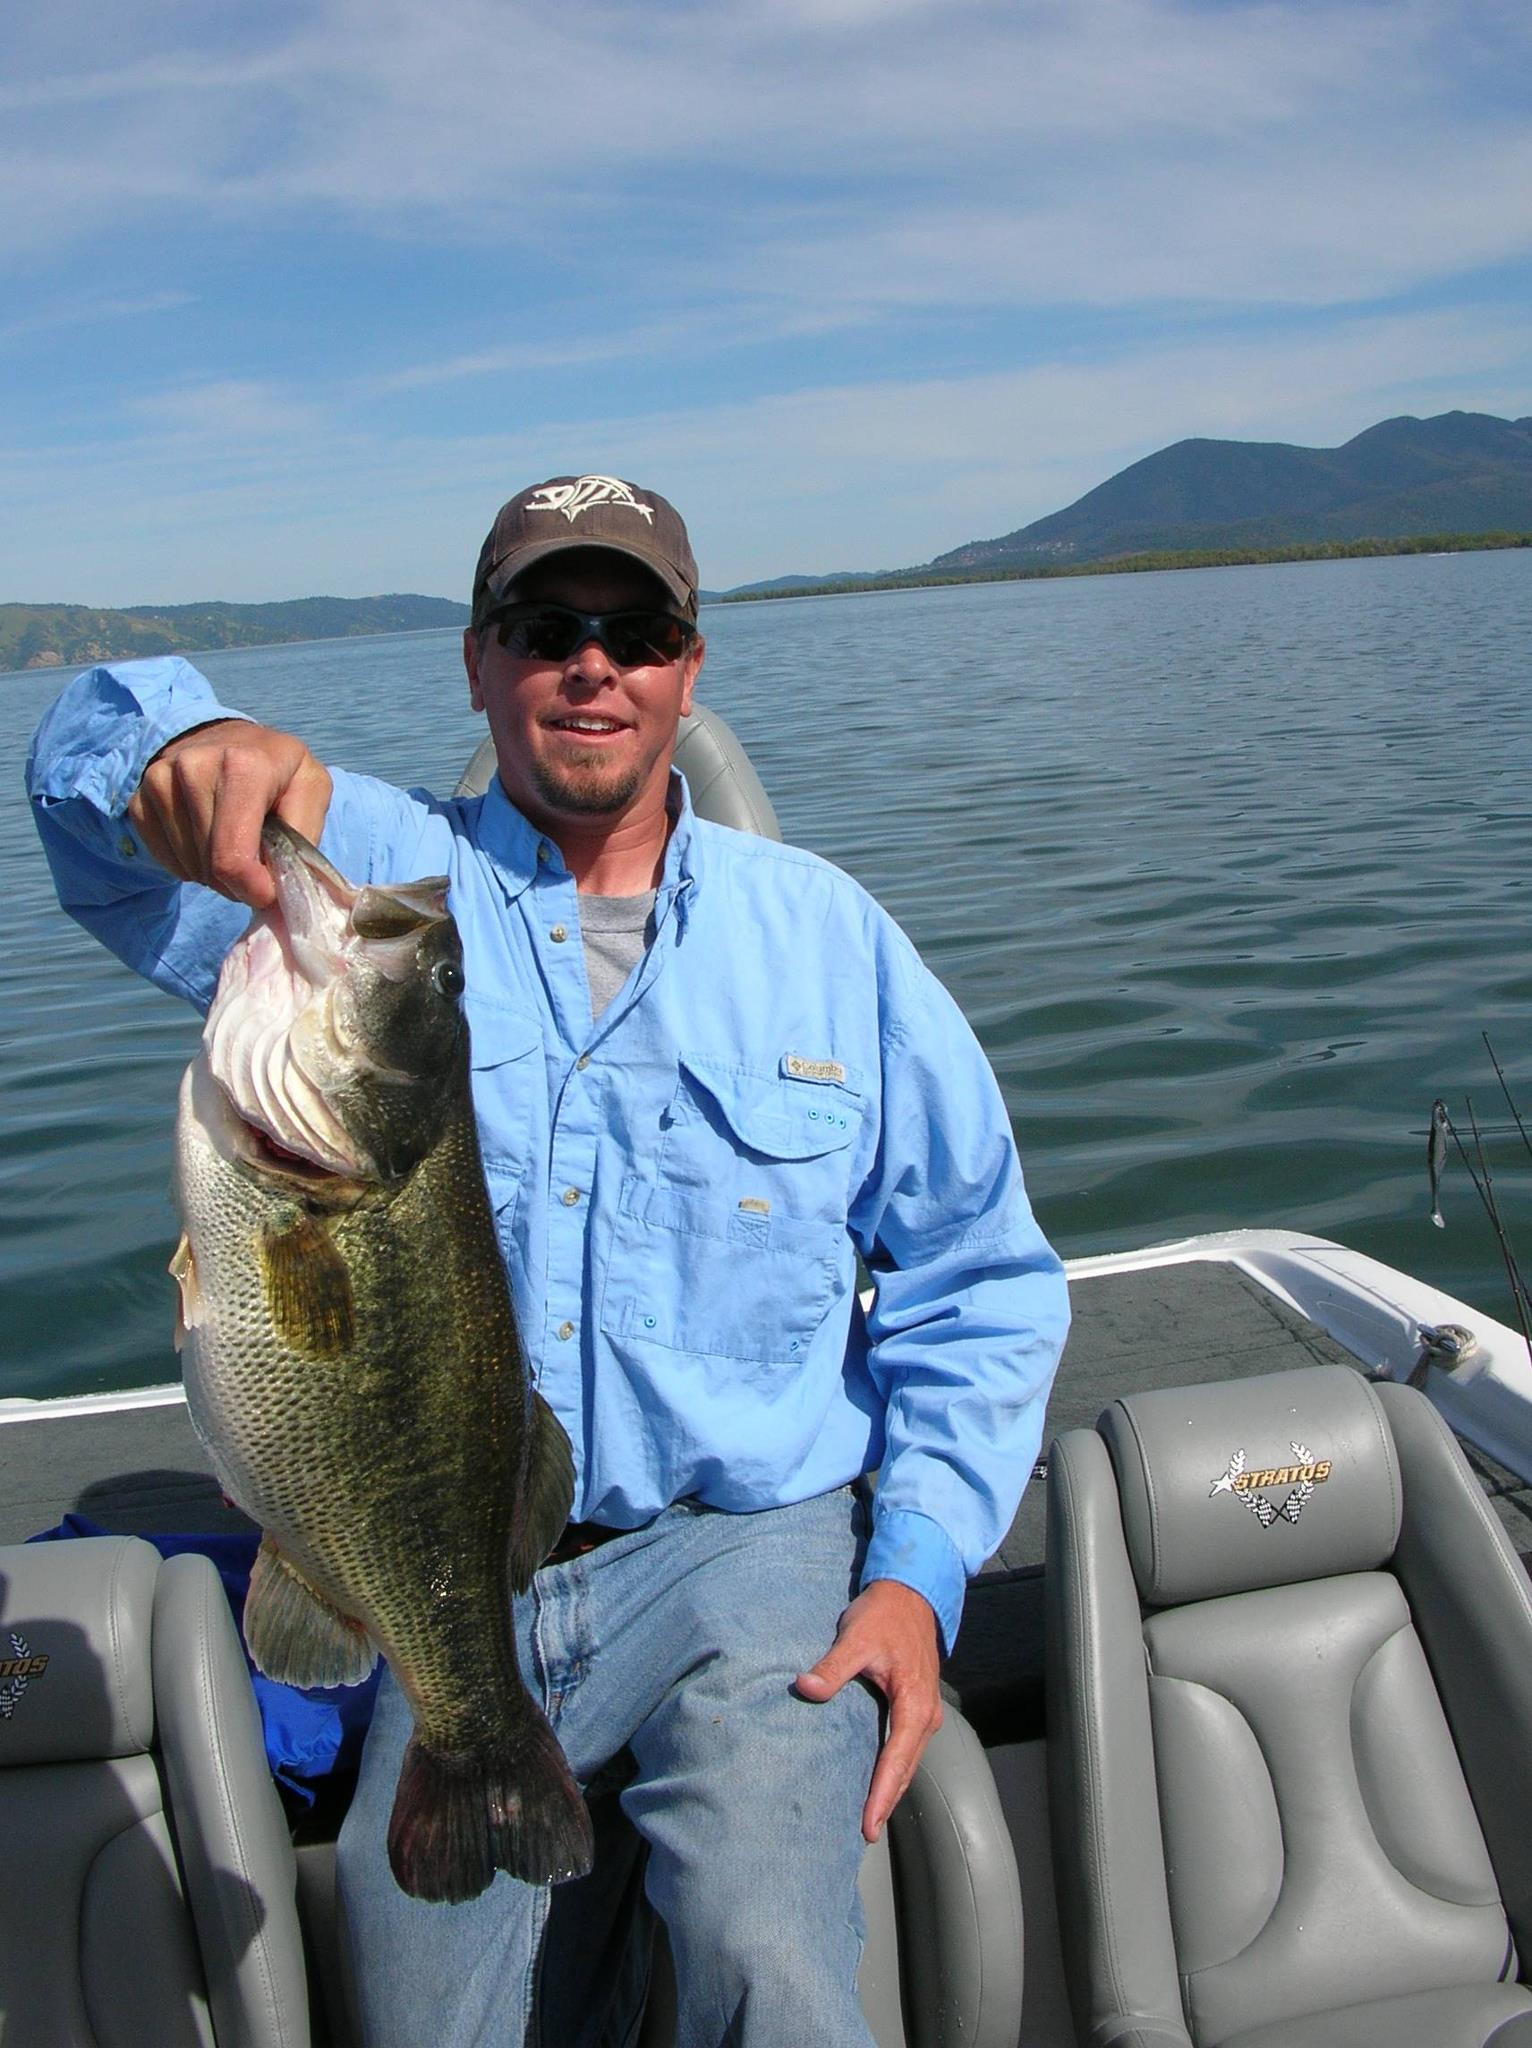 whoop bass guide service